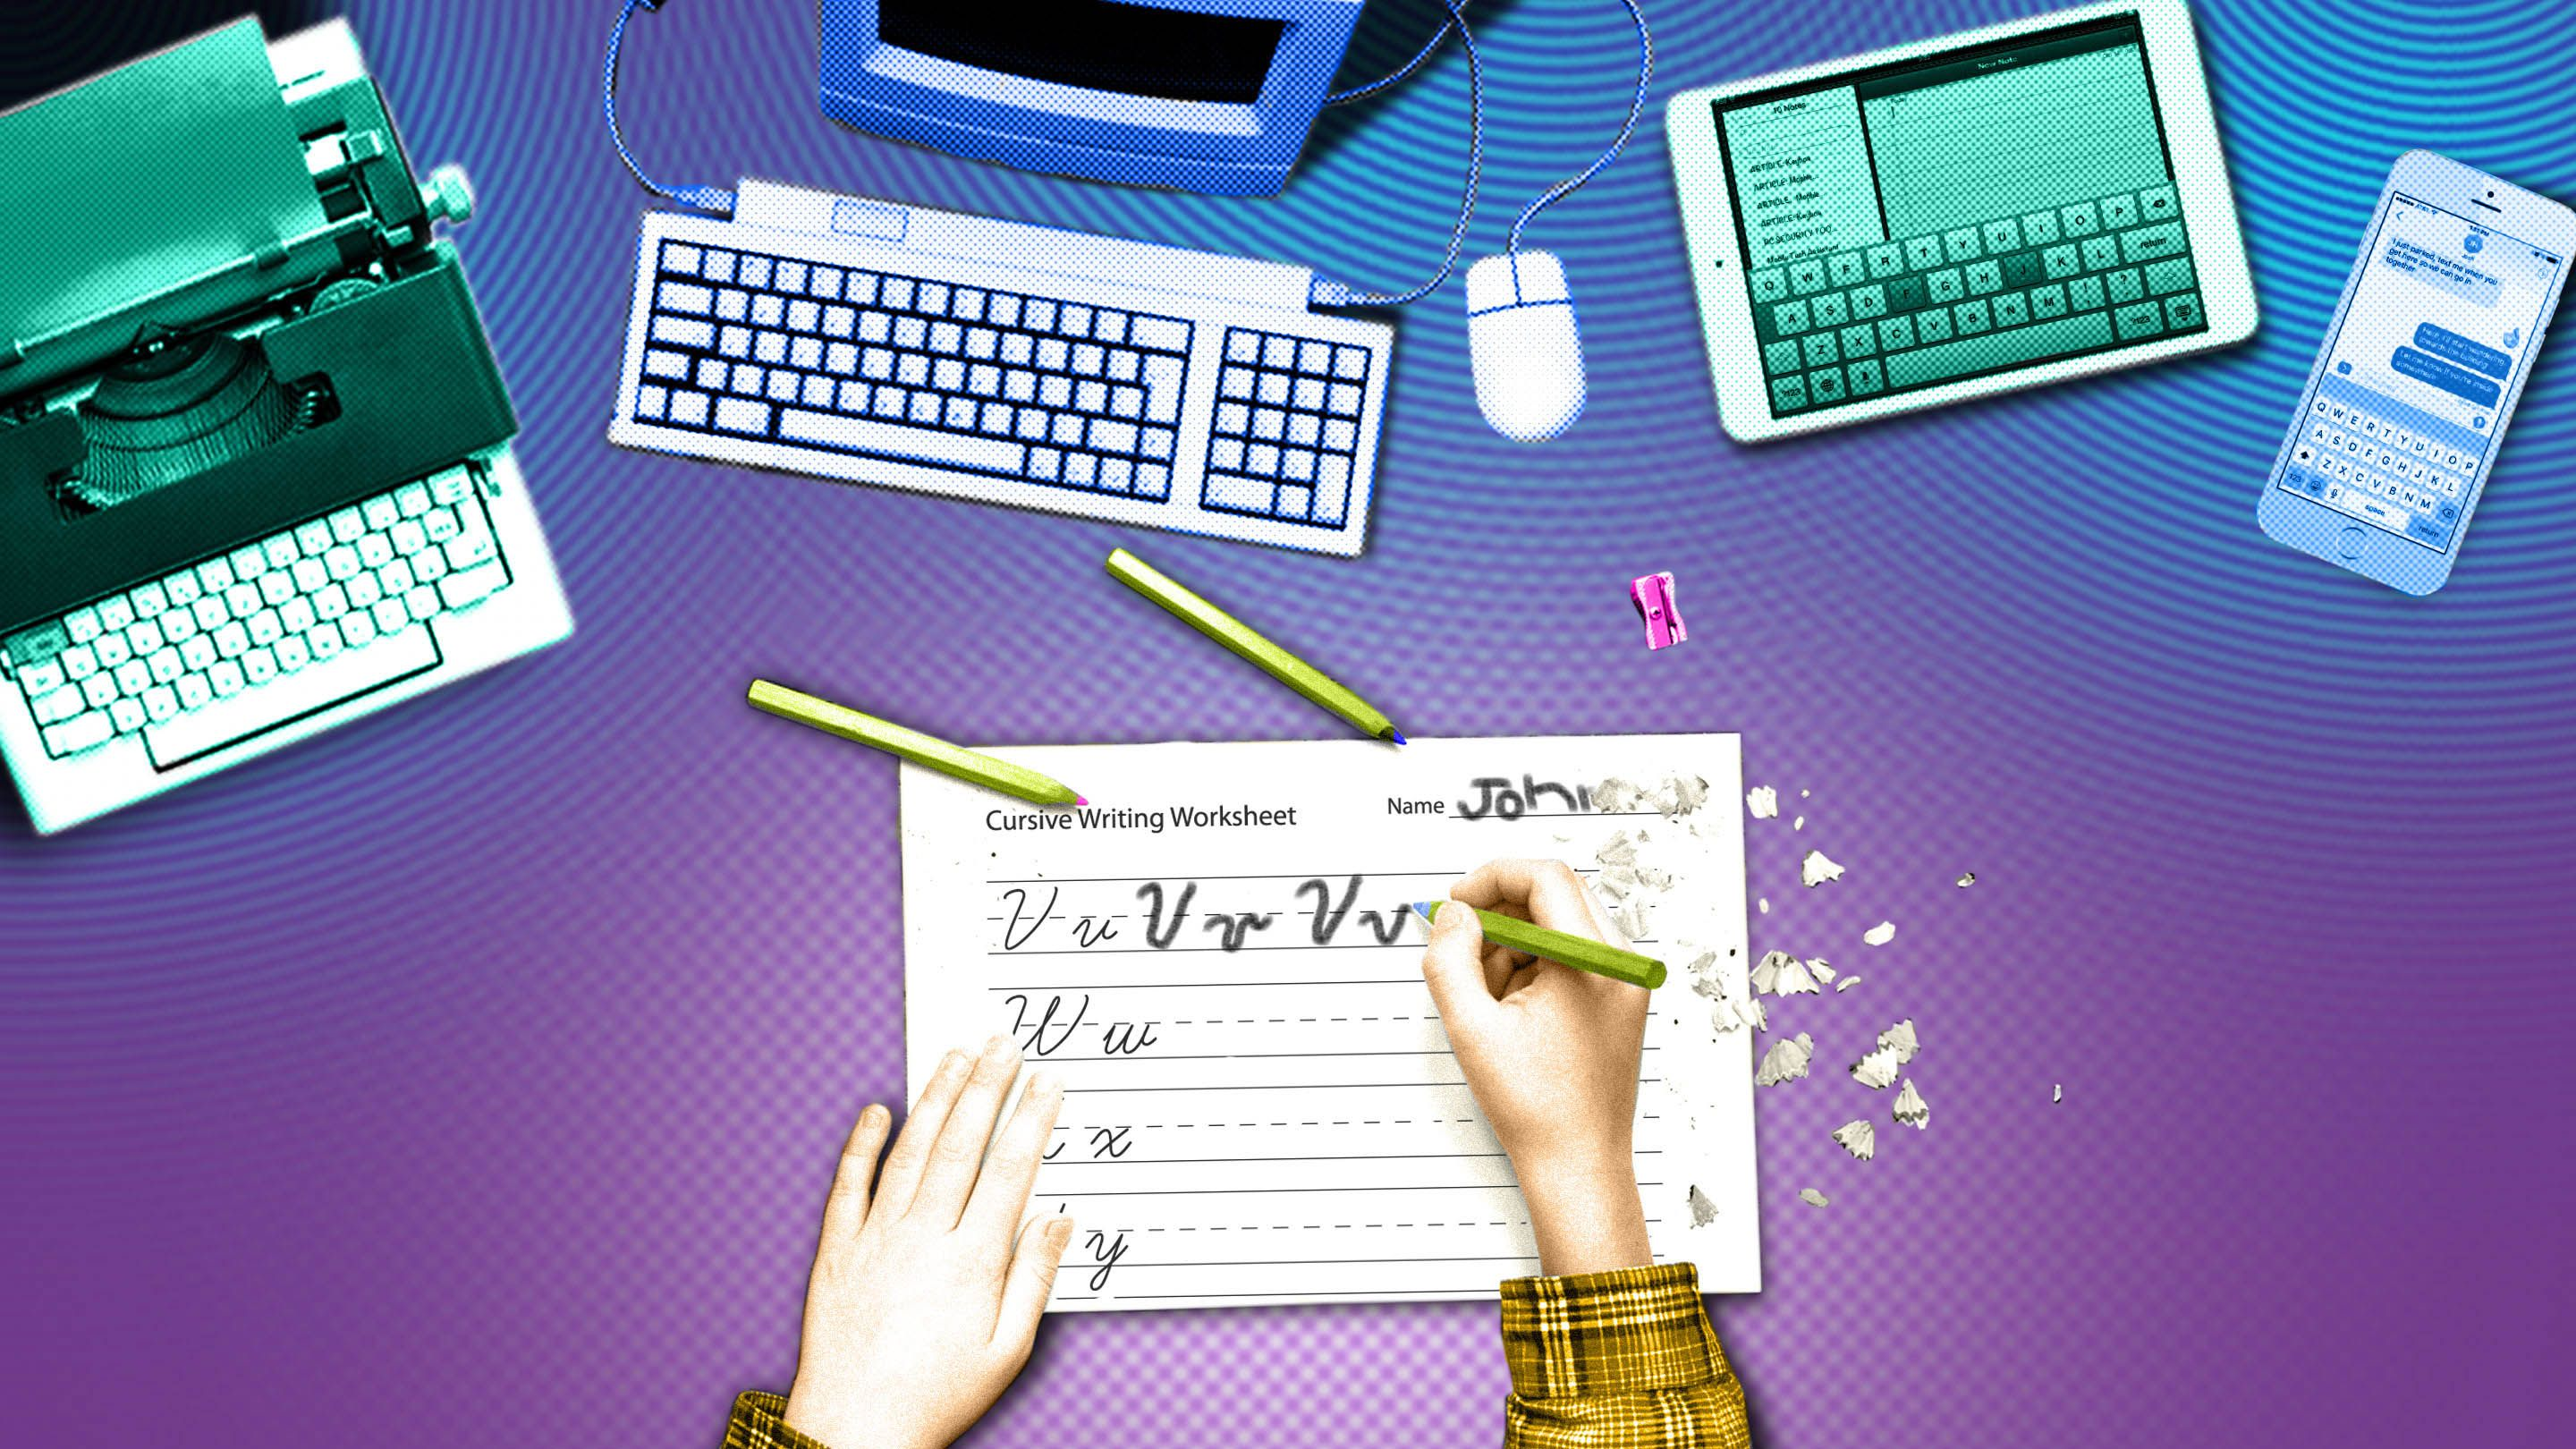 What We Lose With The Decline Of Cursive